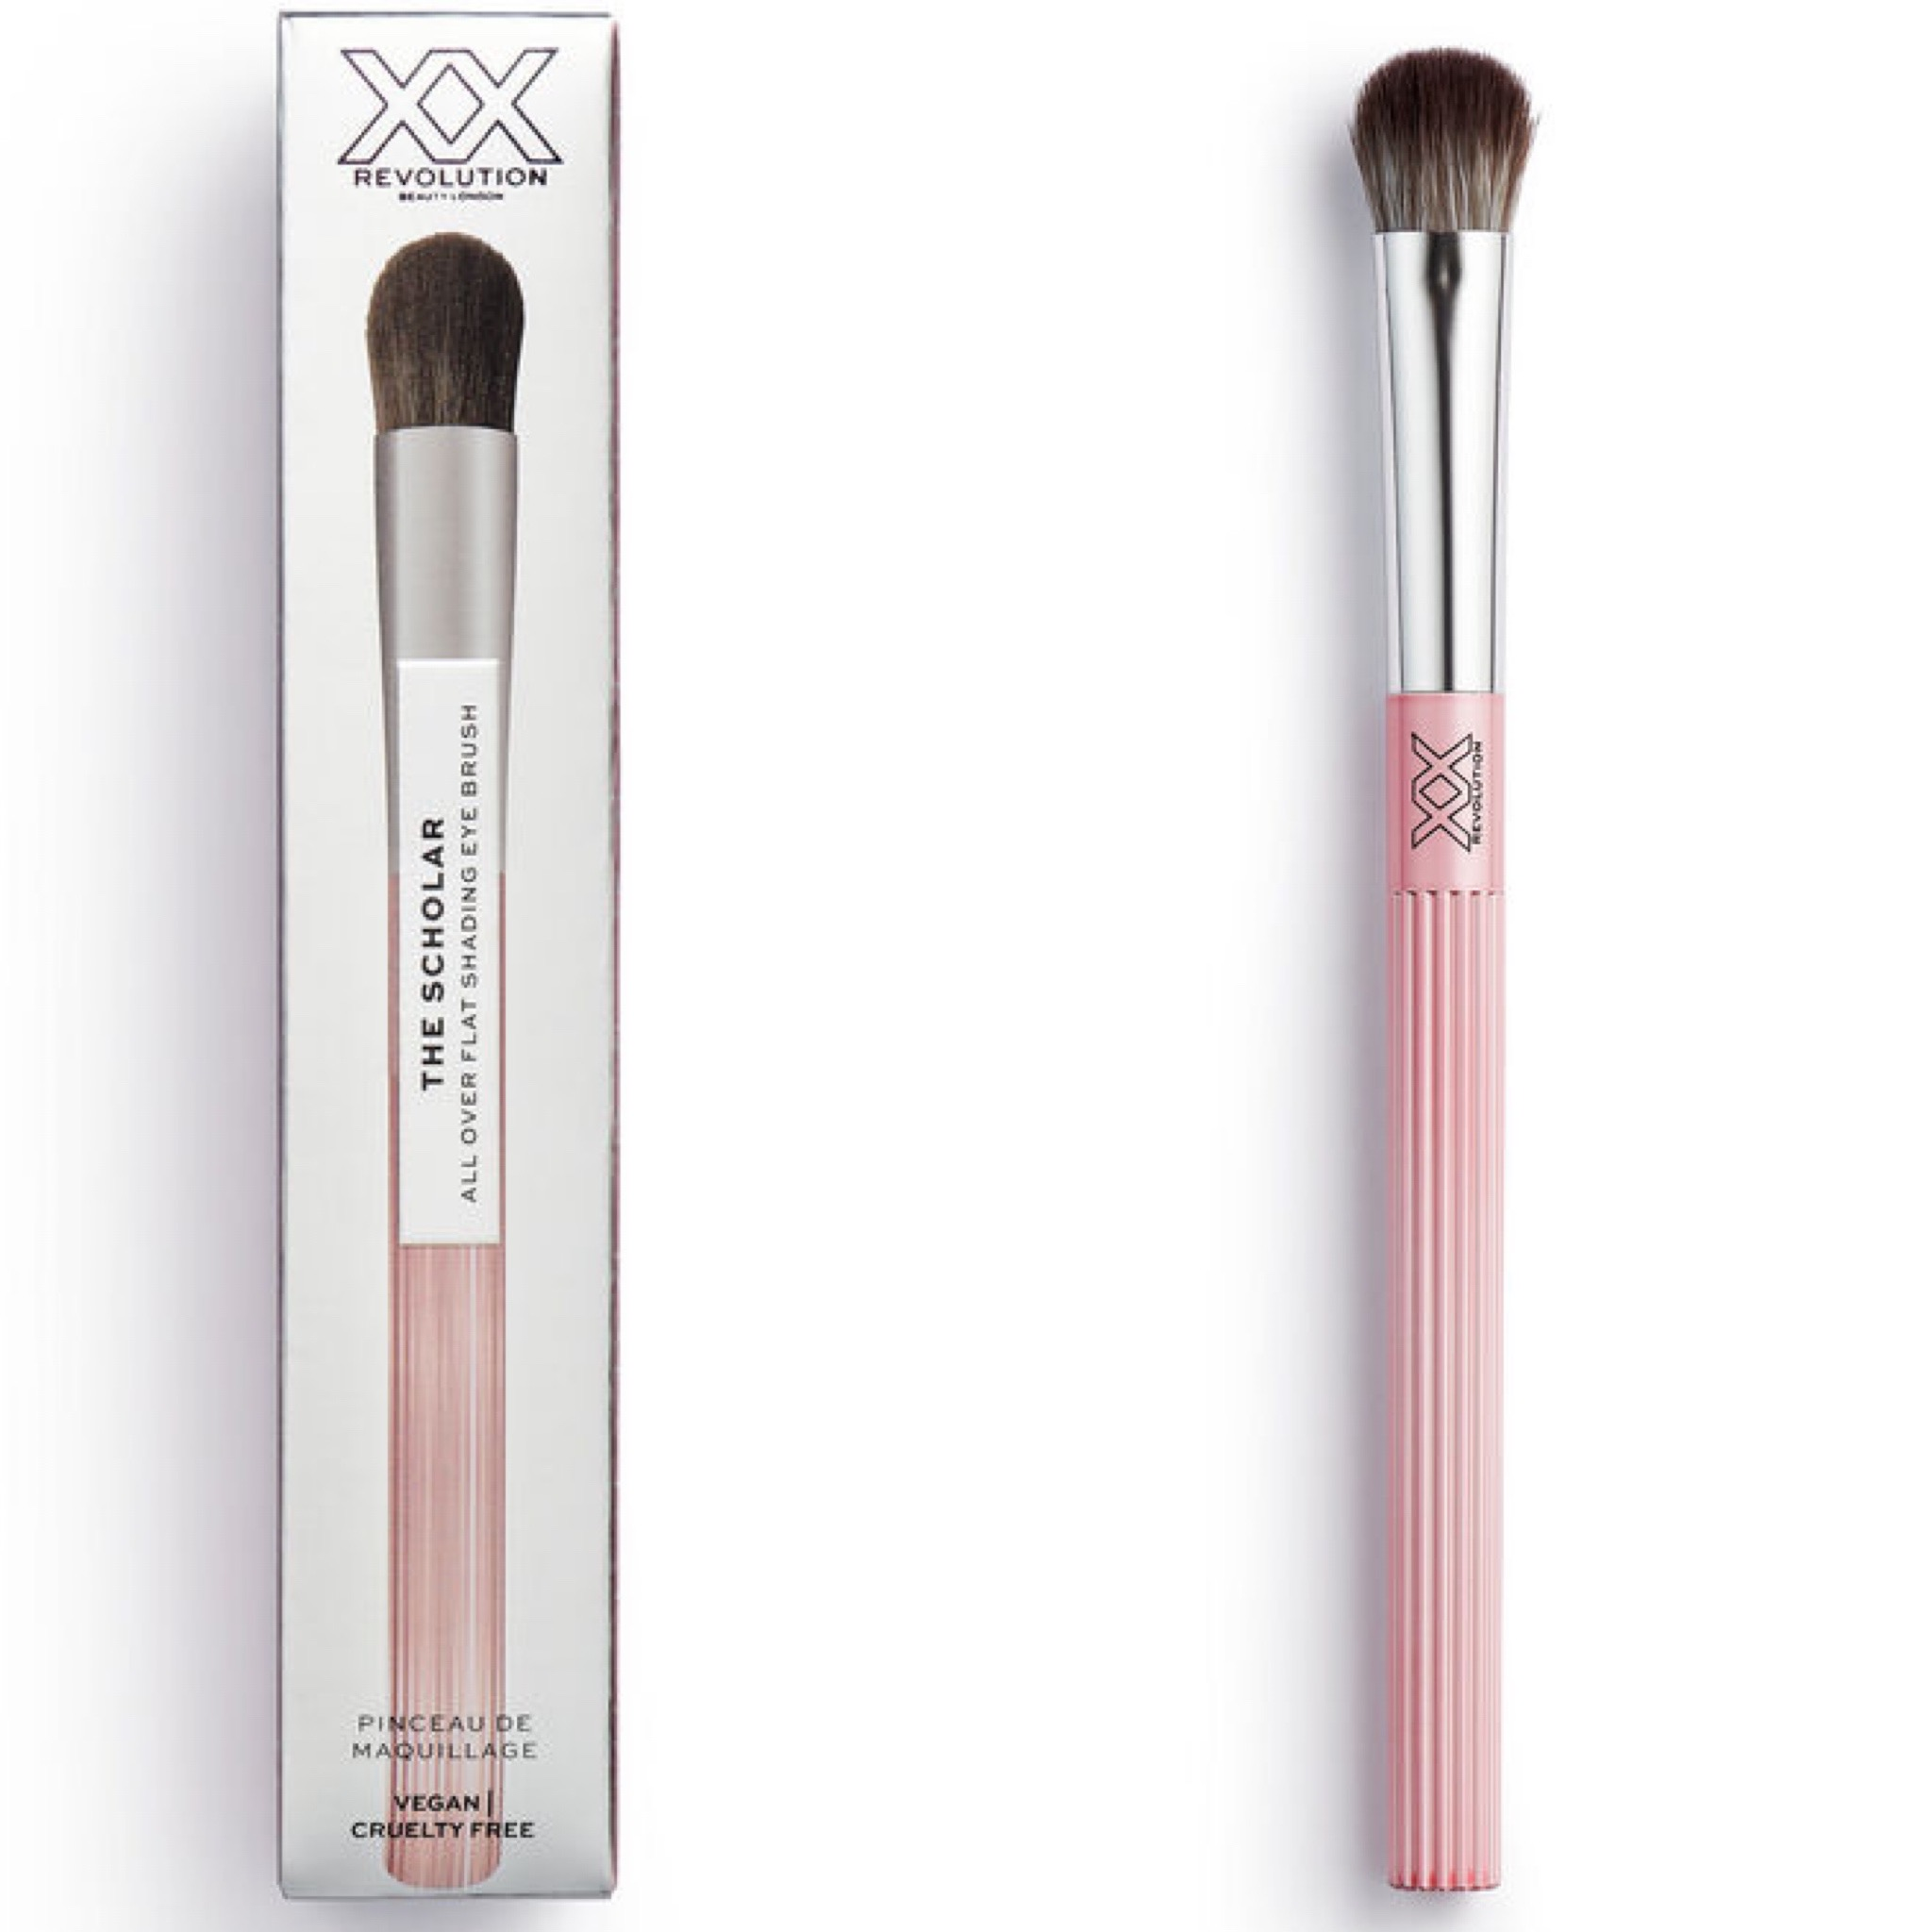 XX Revolution XXpert Makeup Brush Collection